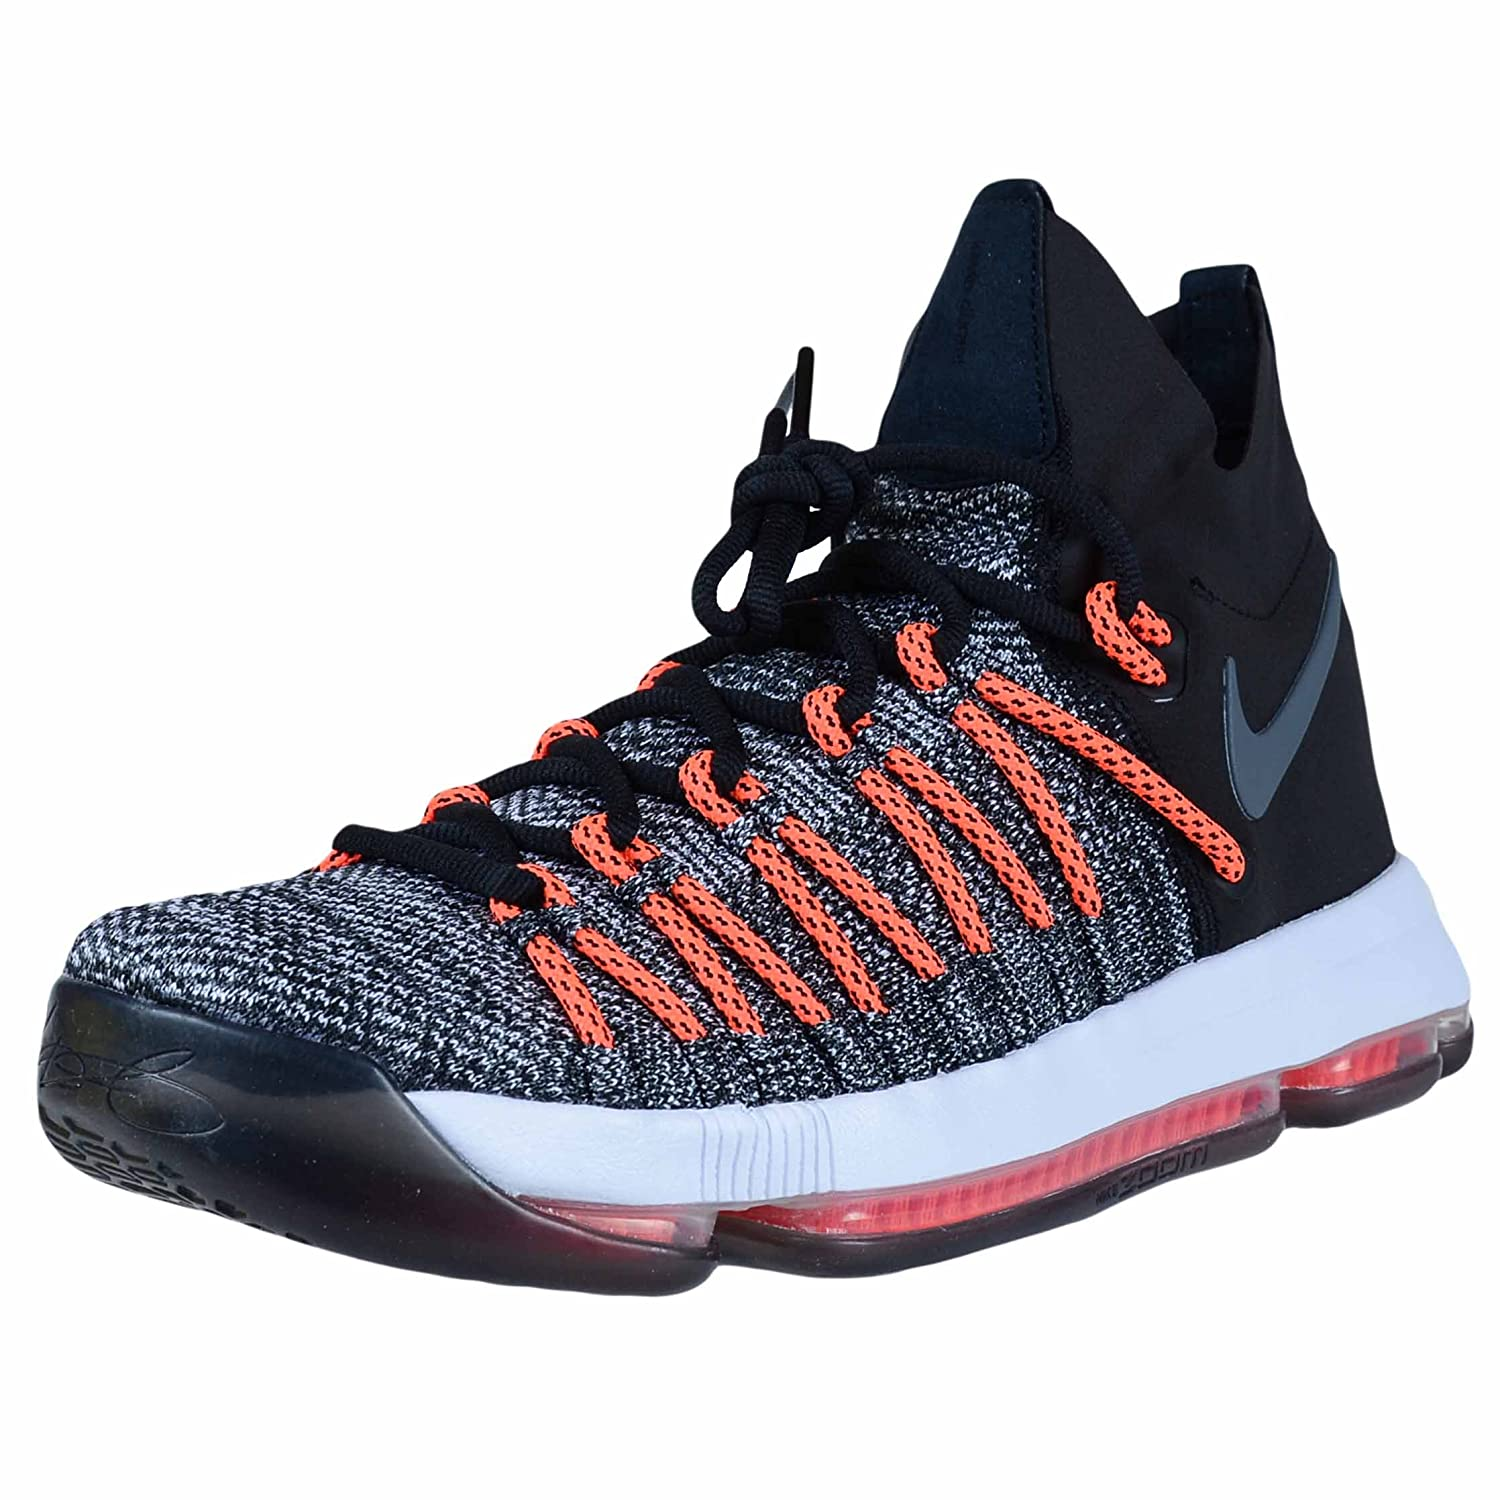 pick up 92898 b3f79 Amazon.com   Nike Zoom KD9 Elite Mens Basketball-Shoes 878637-010 10 -  Black White-Dark Grey-Hyper Orange   Basketball